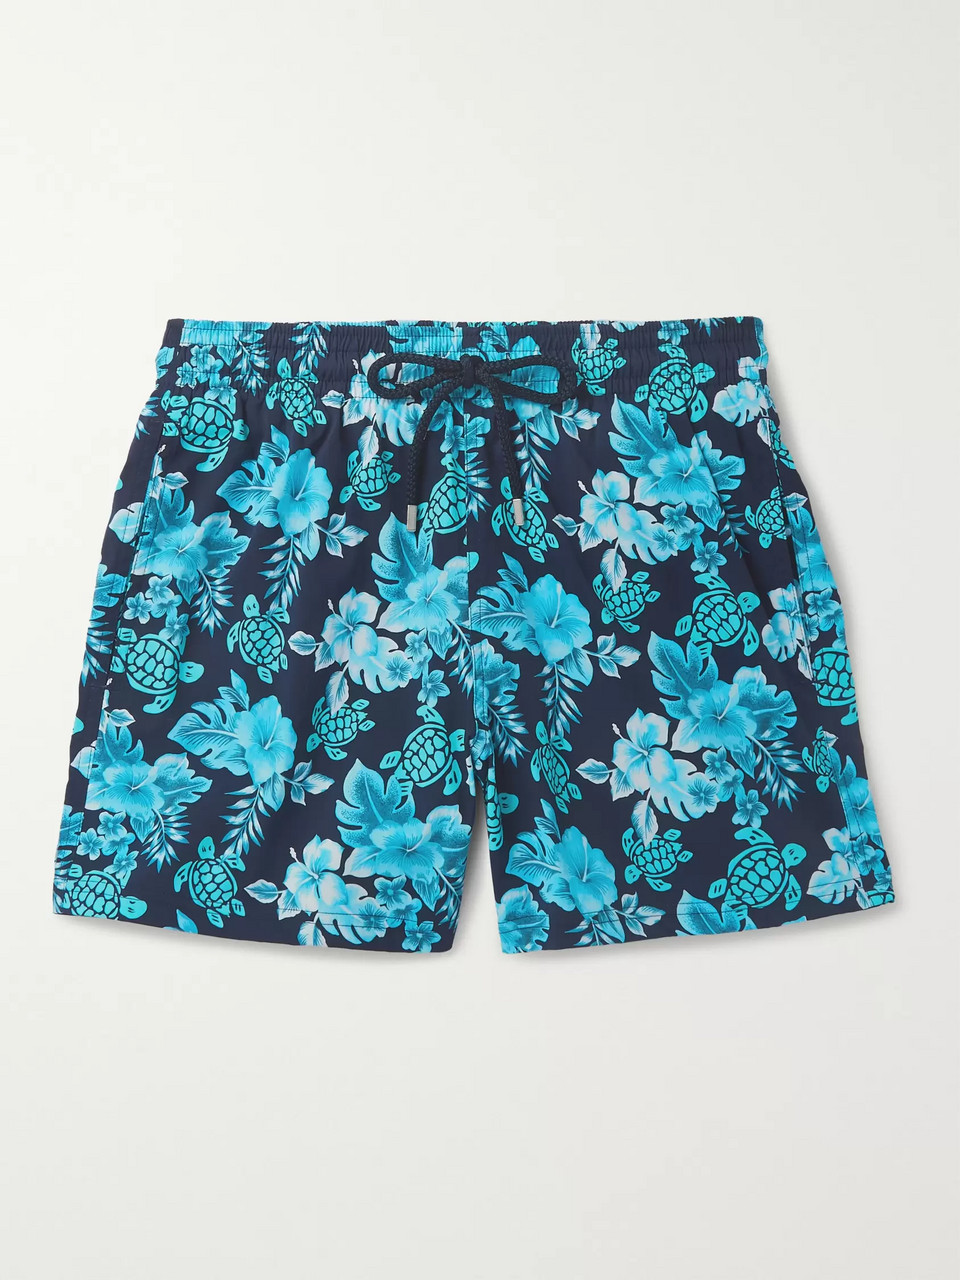 930d924335 Vilebrequin Moorise Slim-Fit Mid-Length Printed Swim Shorts